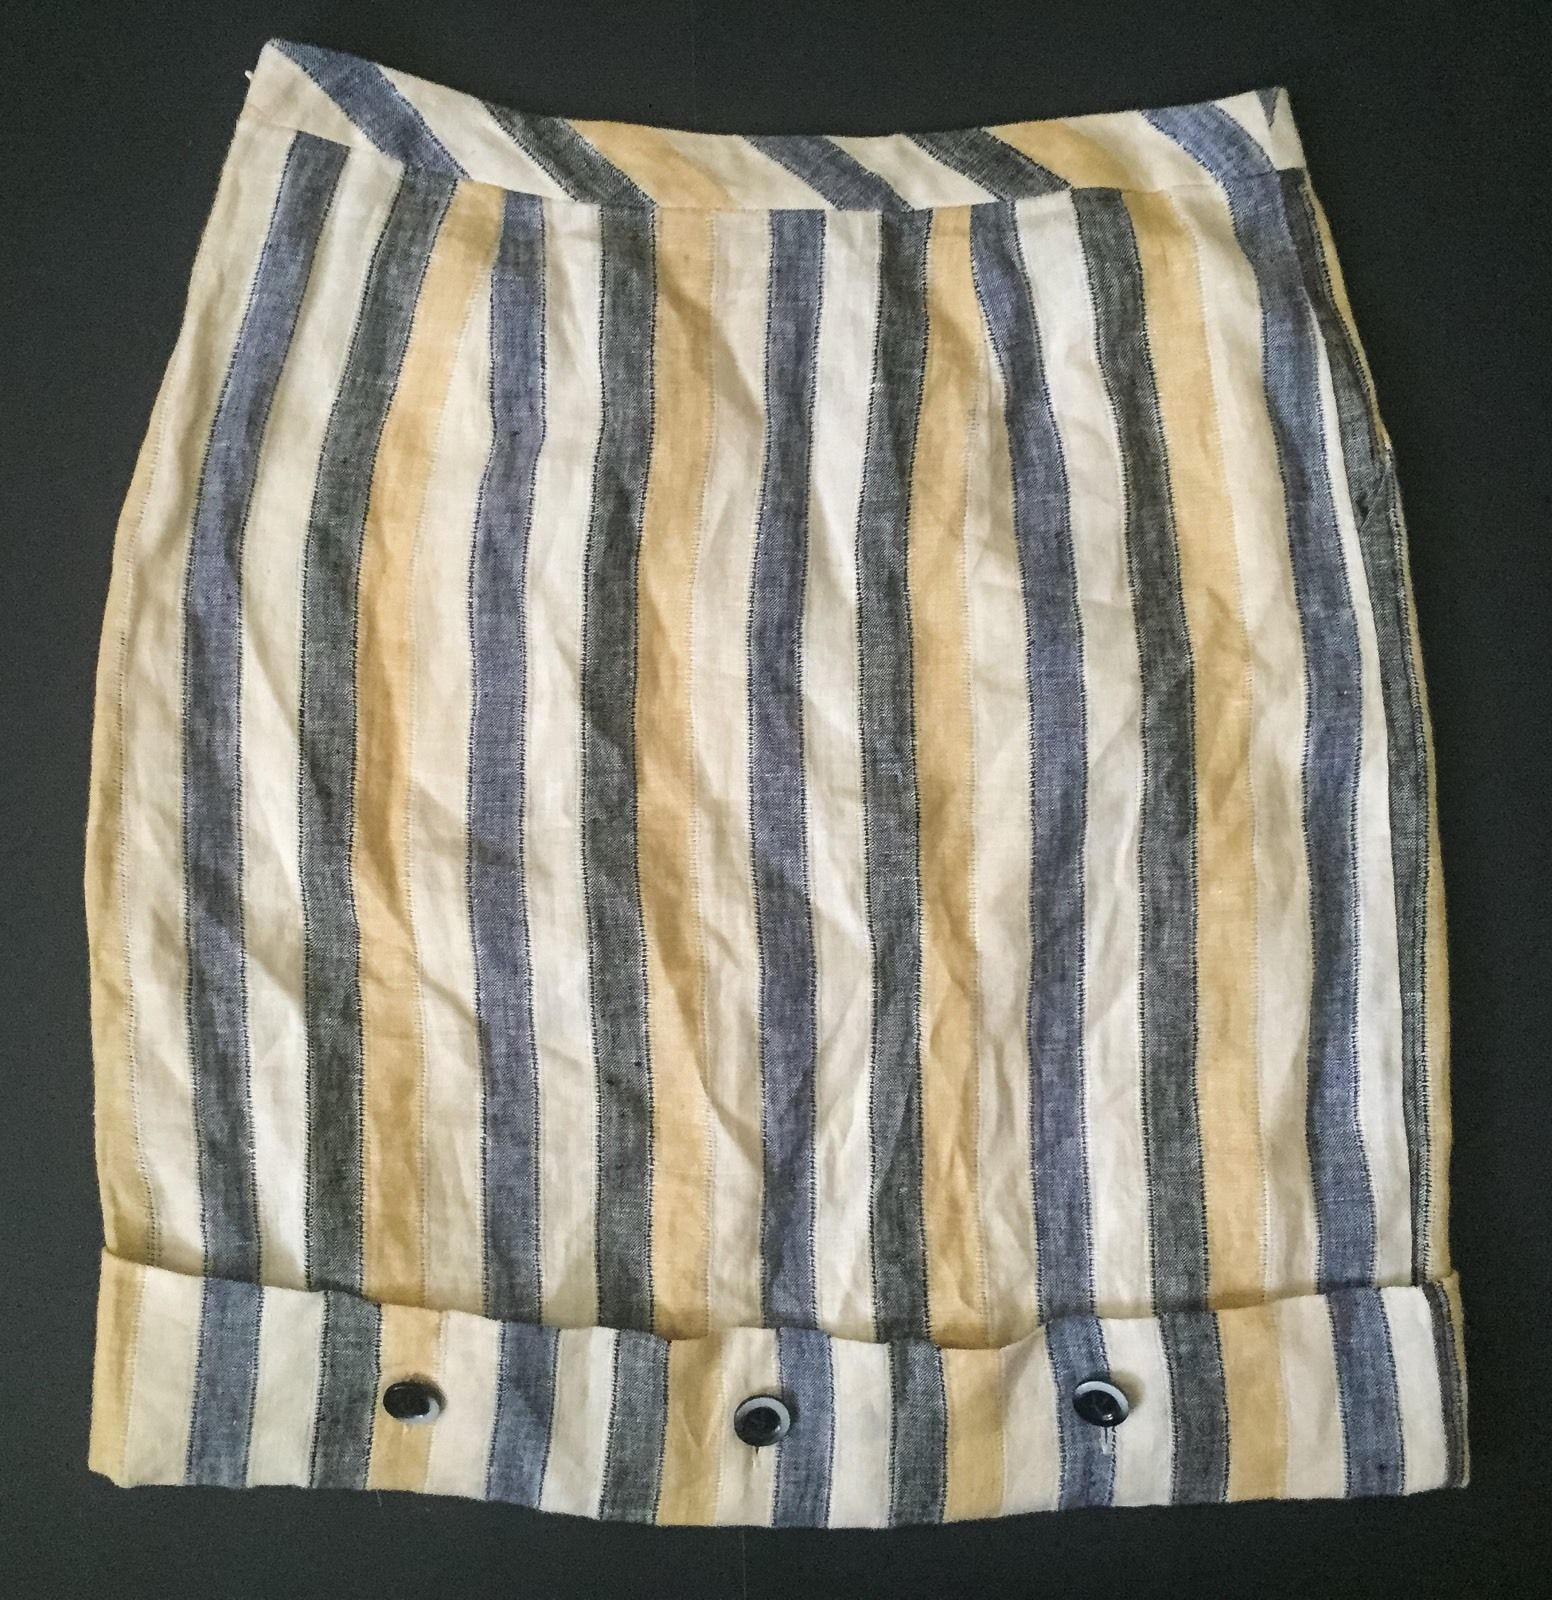 Anthropologie Edme & Esyllte Linen Skirt 4 Striped Cafe Awning Button Pockets